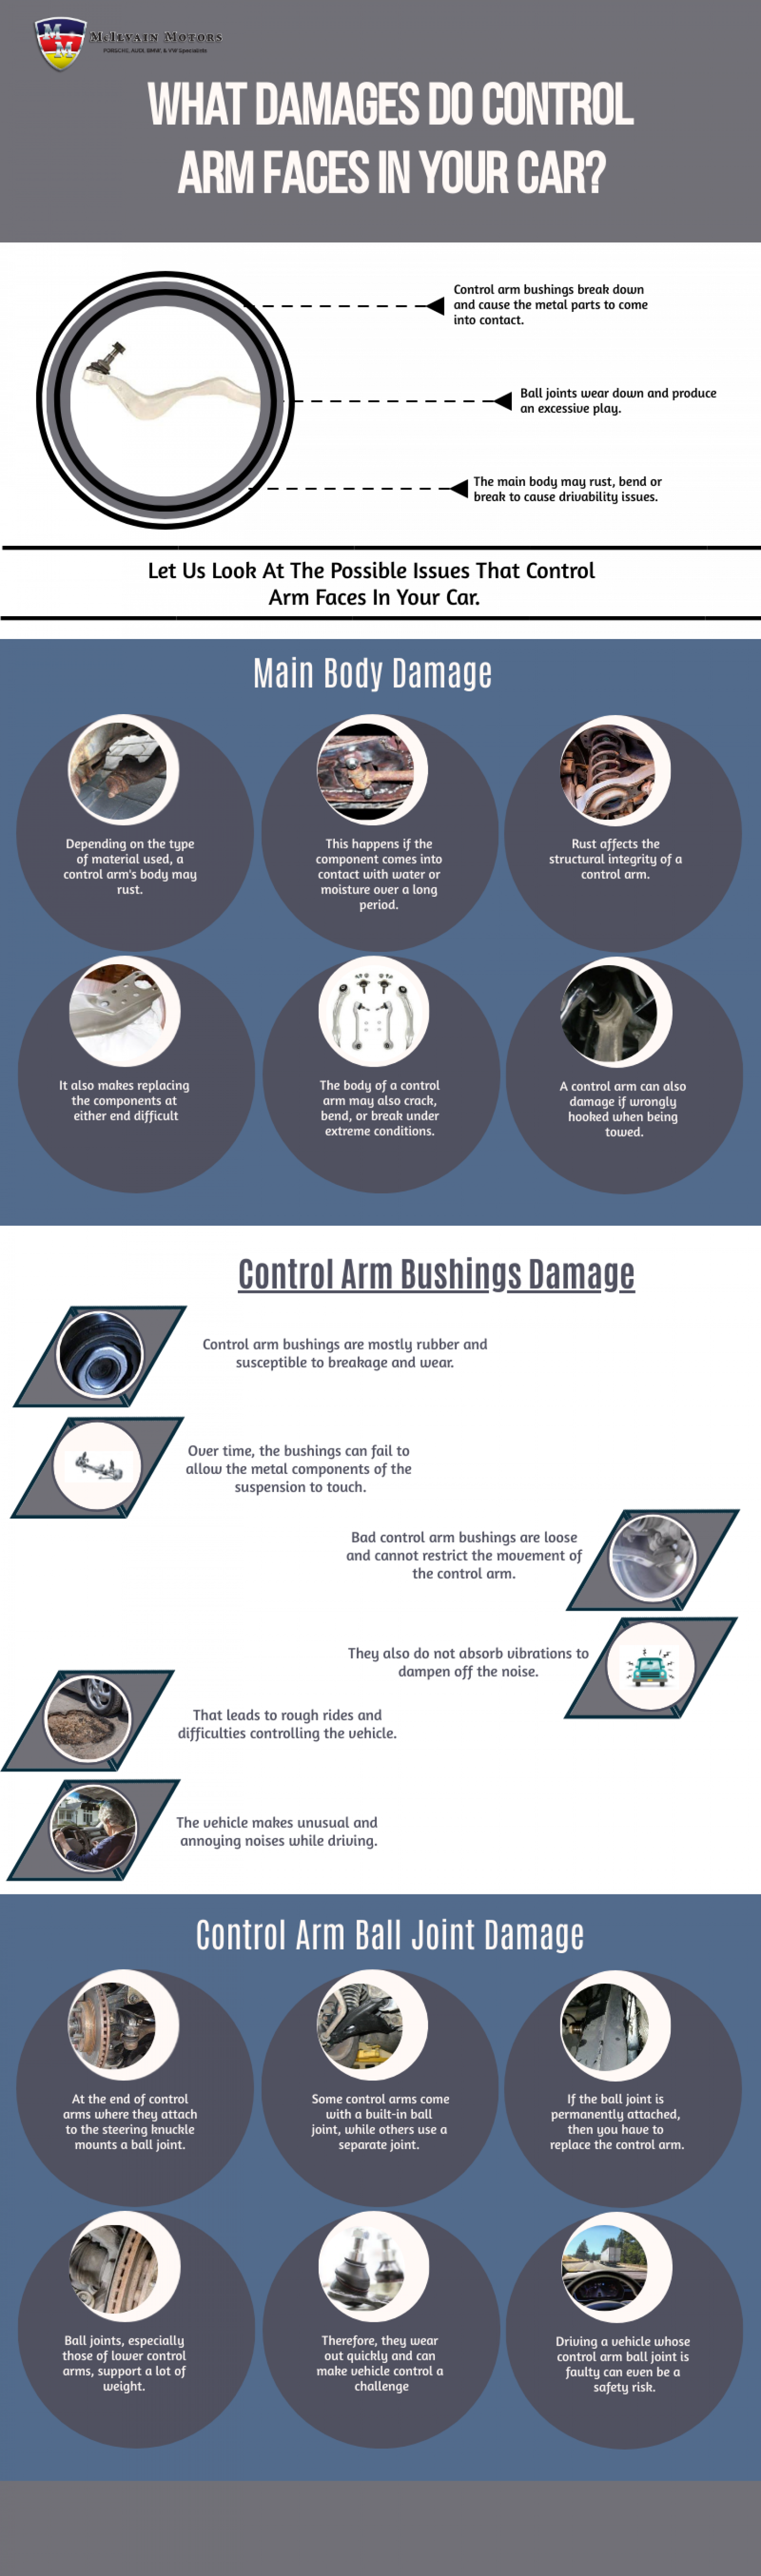 What Damages do Control Arm Faces in Your Car Infographic